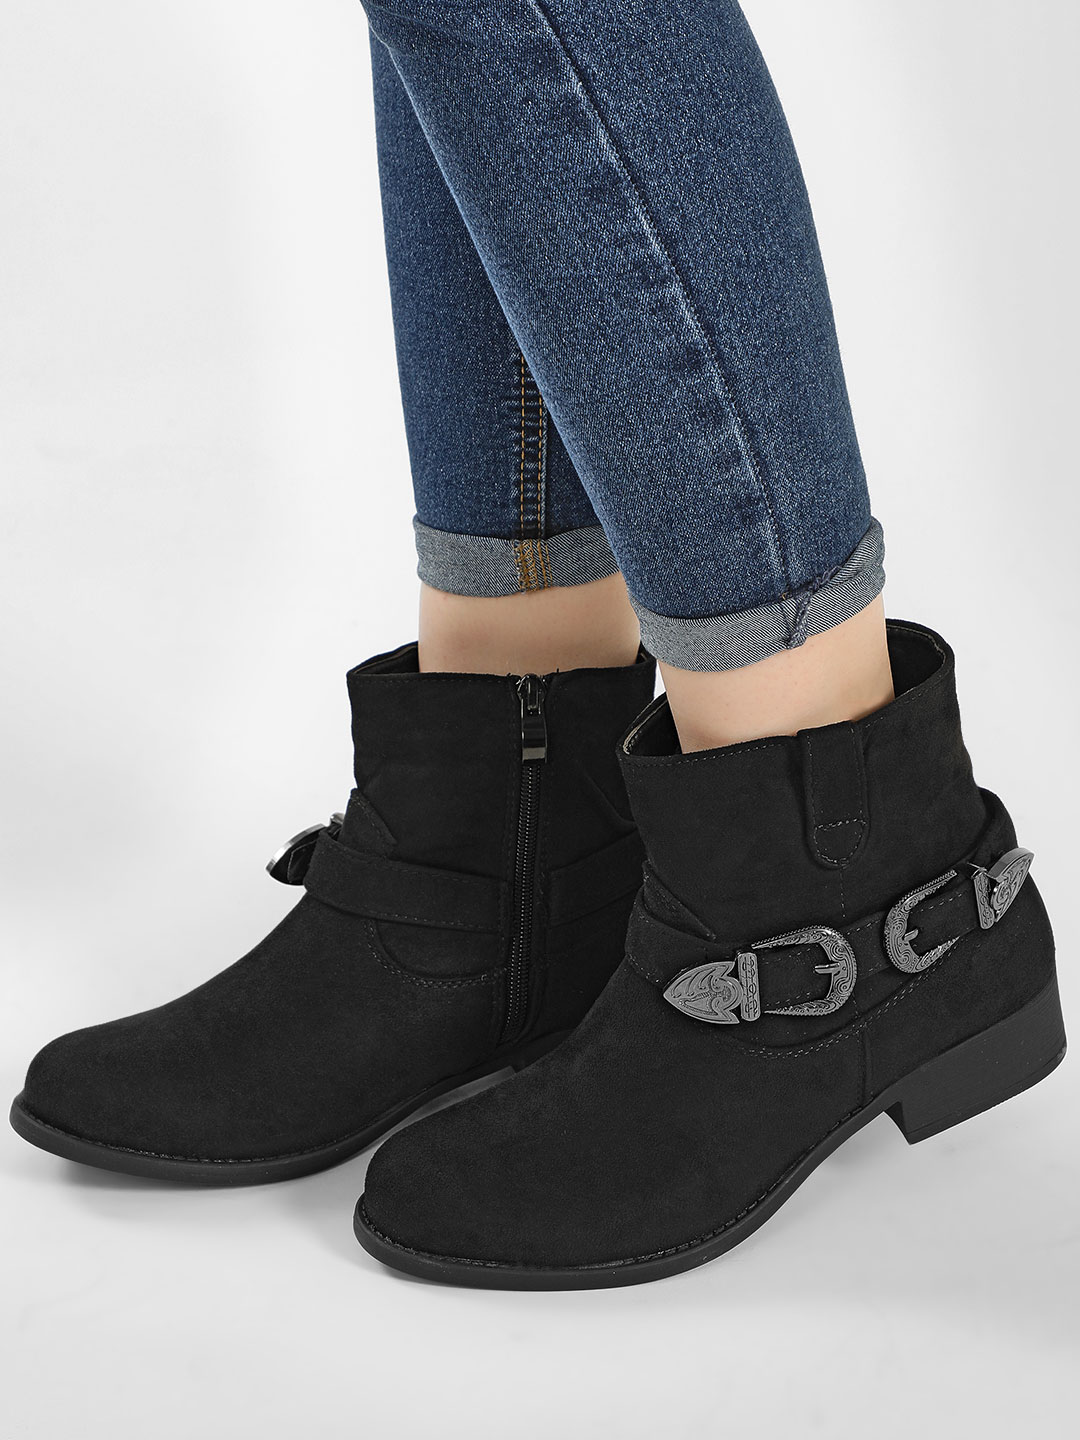 My Foot Couture Black Vintage Buckle Detail Ankle Boots 1